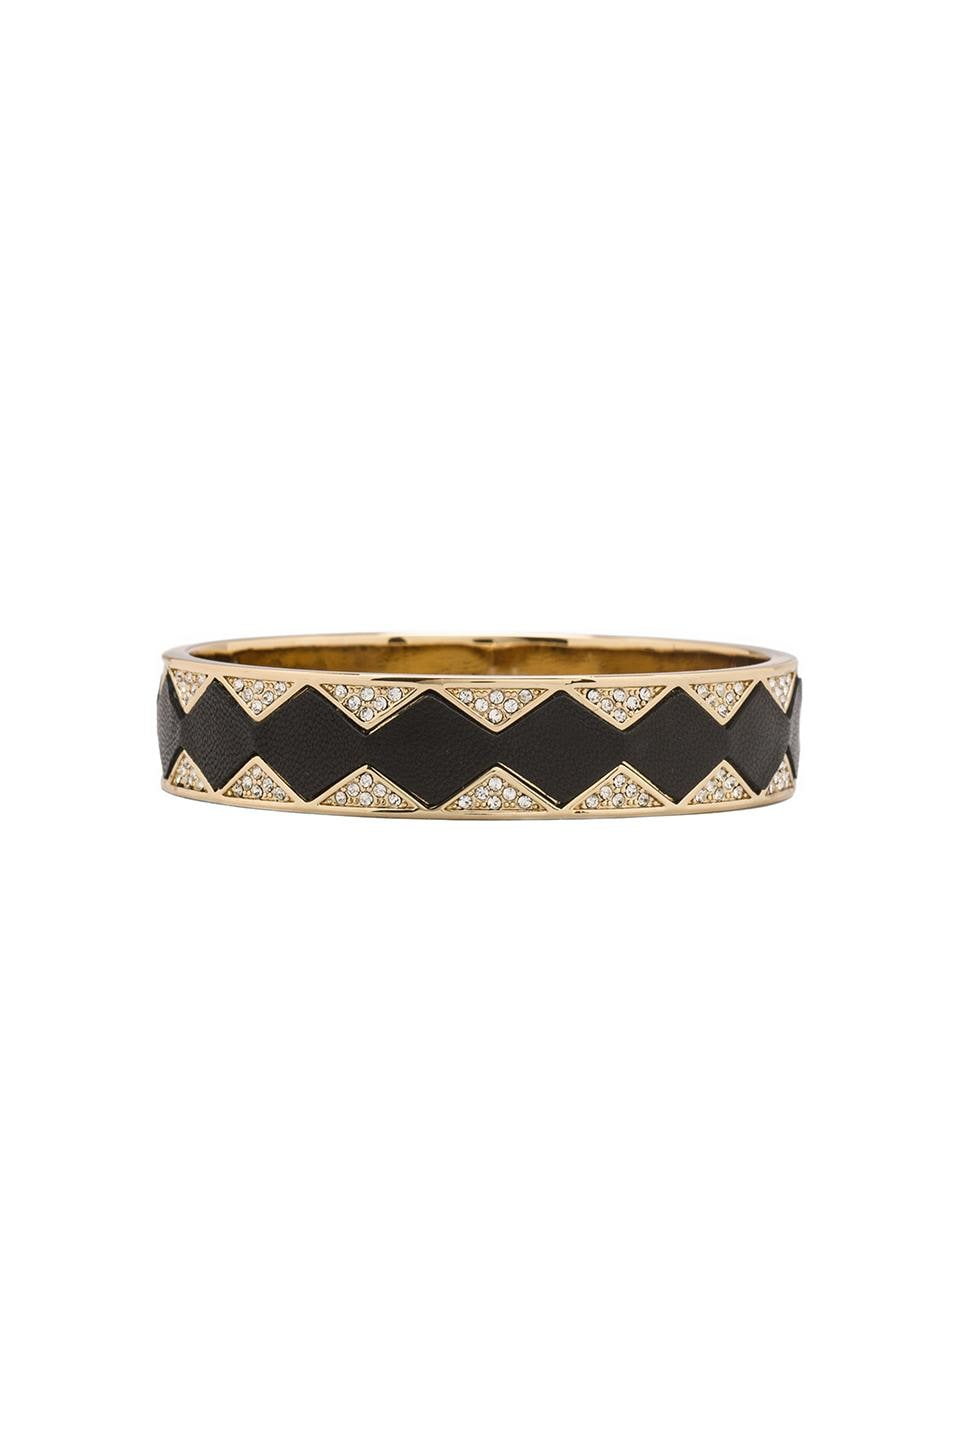 House of Harlow Sunburst Bangle in Gold Tone Sunburst with Black